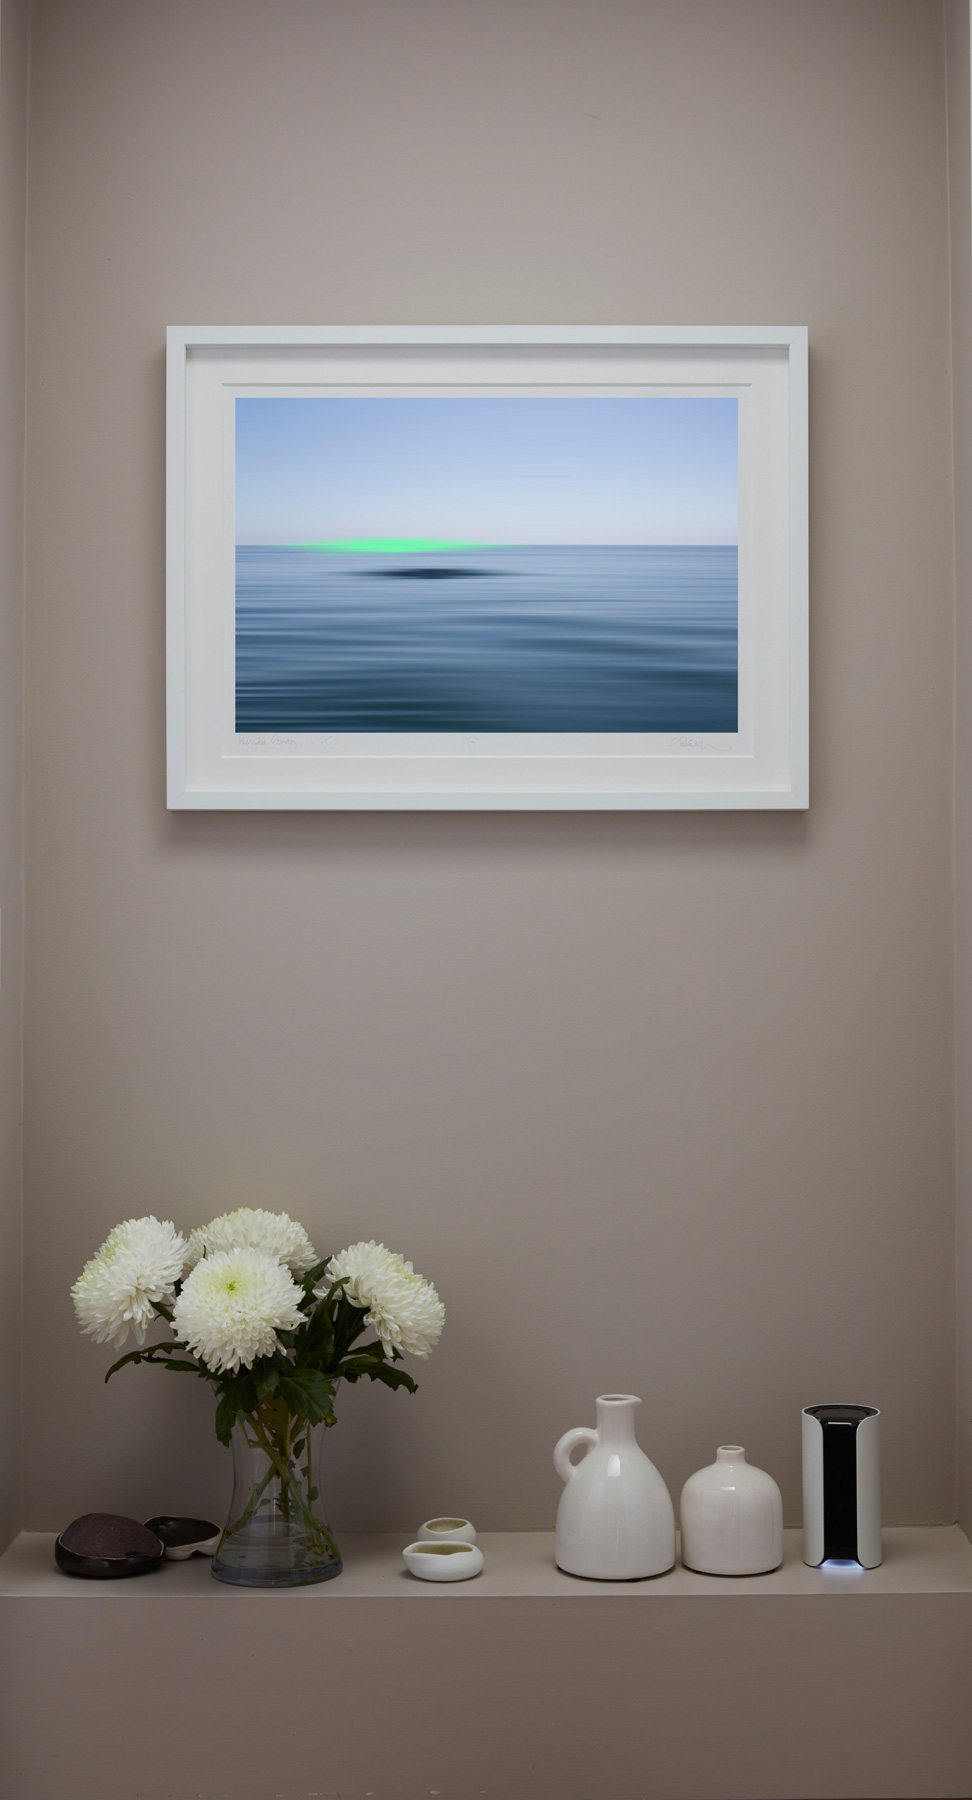 Interrupted Seascapes framed with a window mount in a box frame